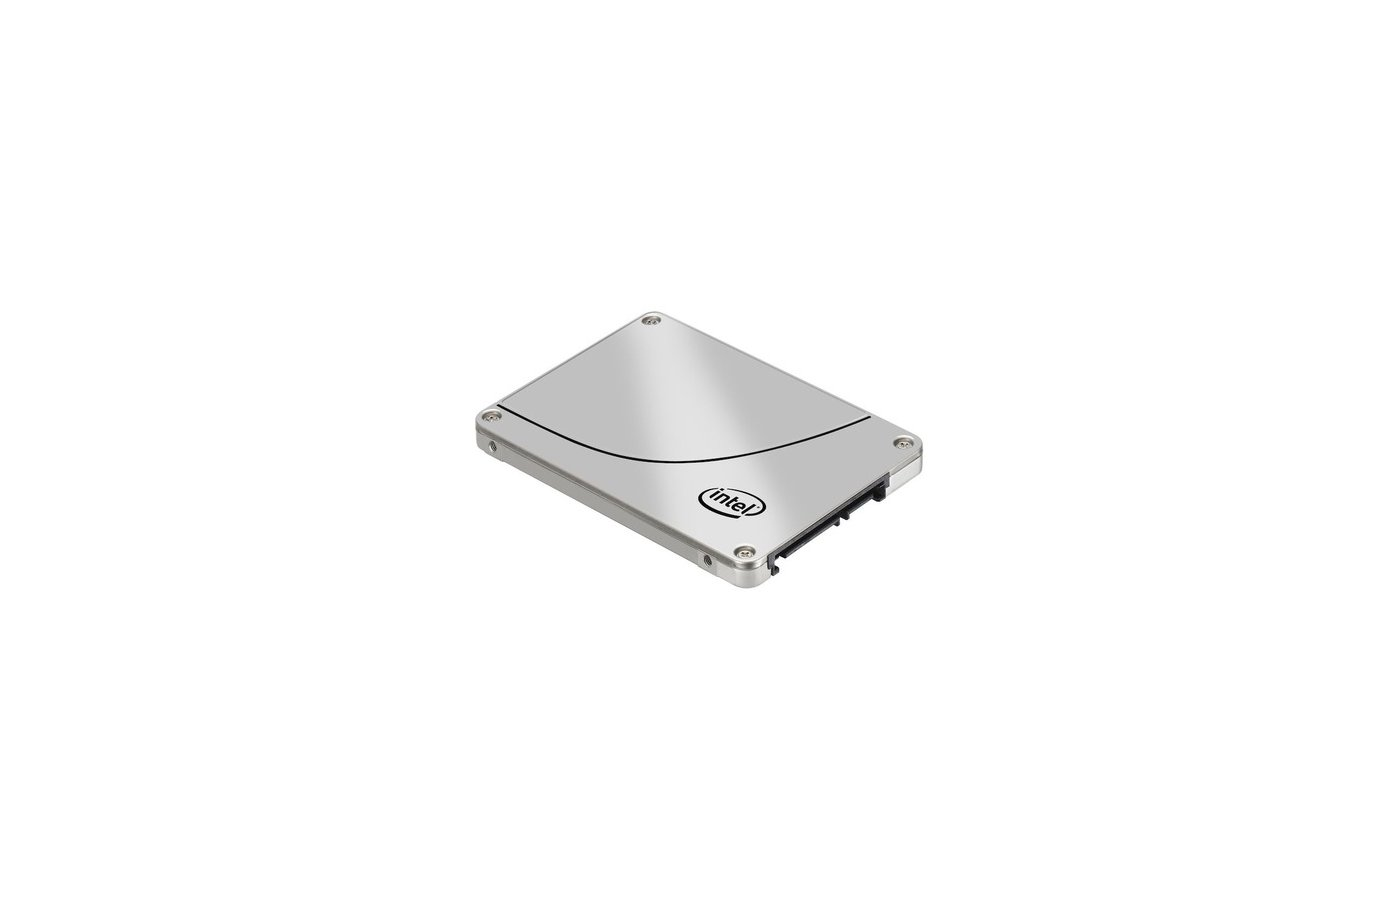 "SSD жесткий диск Intel SSD DC S3710 Series SSDSC2BA012T401 (1.2TB, 2.5in SATA 6Gb/s, 20nm, MLC) 7mm, without 3.5"" bra"